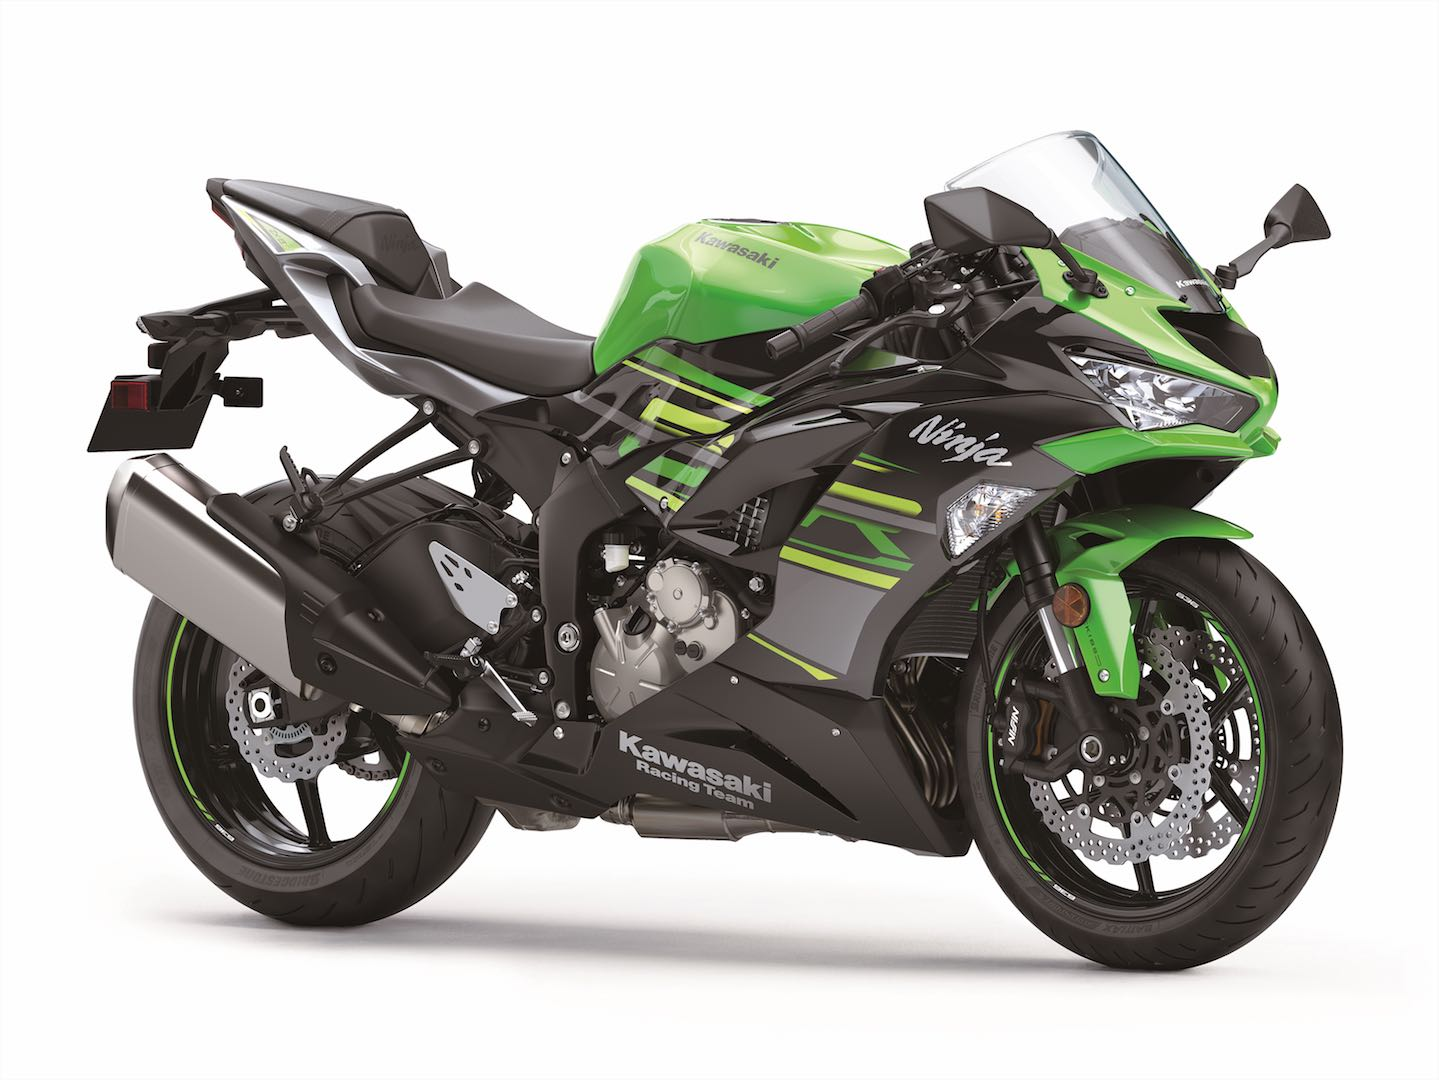 019 Kawasaki Ninja ZX-6R Ninja color options